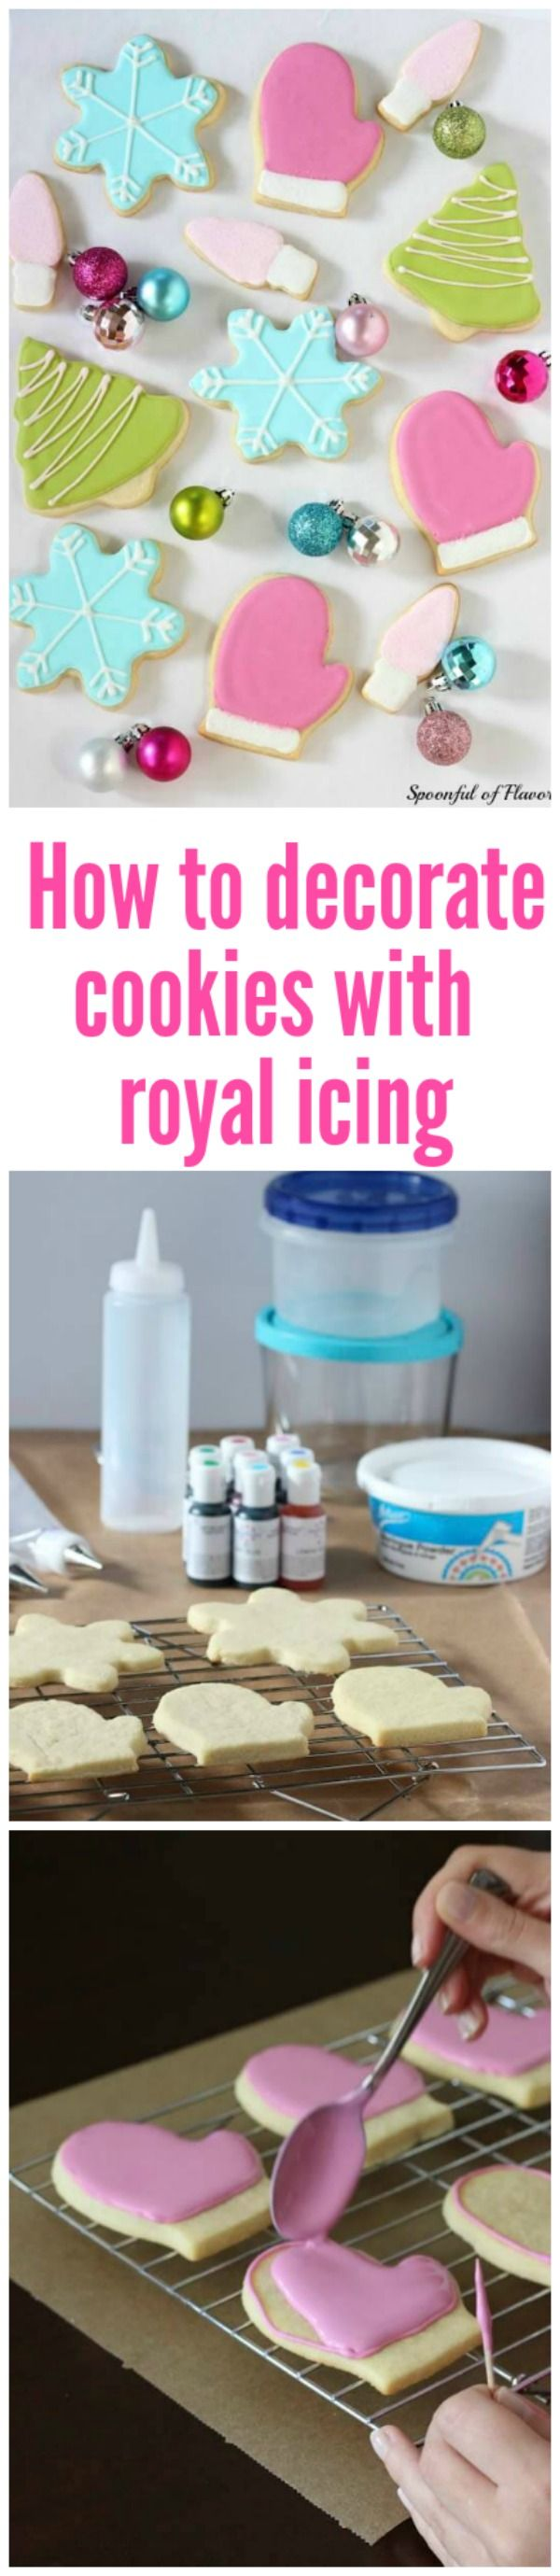 Step by step instructions on how to decorate cookies with royal icing. Following these steps you will be able to make perfectly iced cookies.